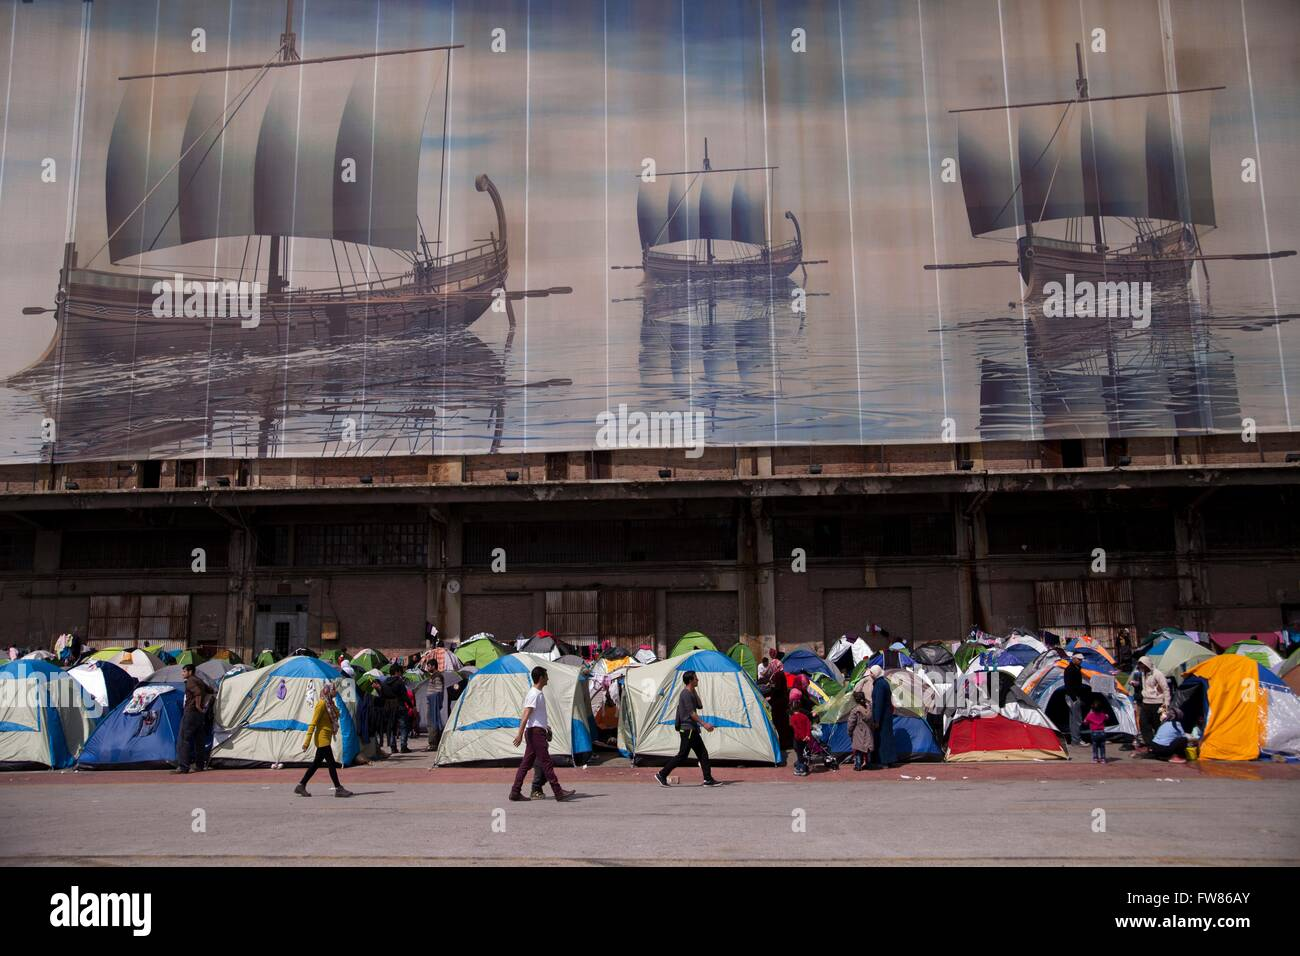 Image with sailing boats, above tens of refugees, at habour of Piraeu. For weeks thousands of refugees are stuck - Stock Image